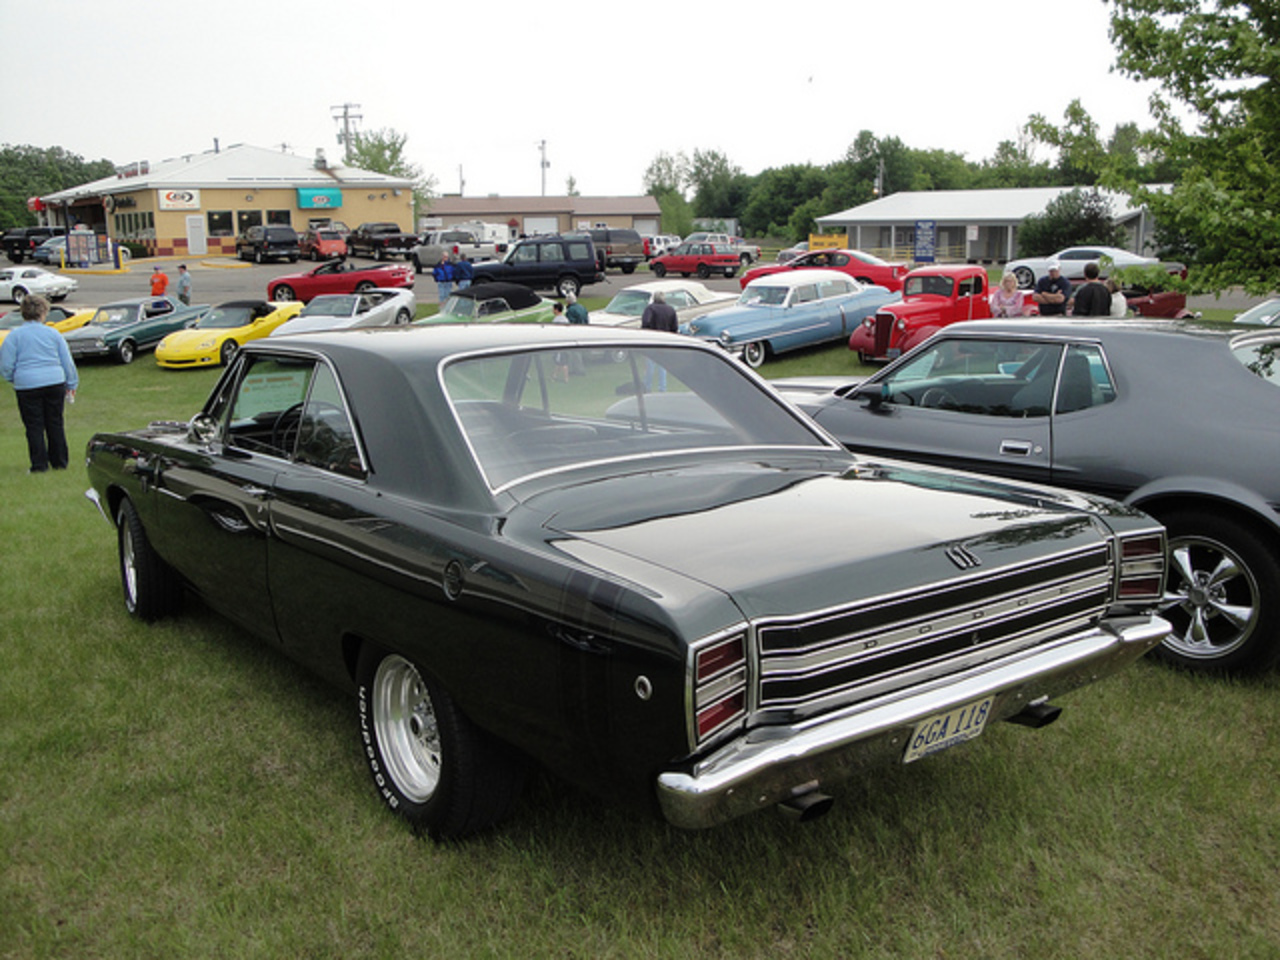 68 Dodge Dart GTS | Flickr - Photo Sharing!